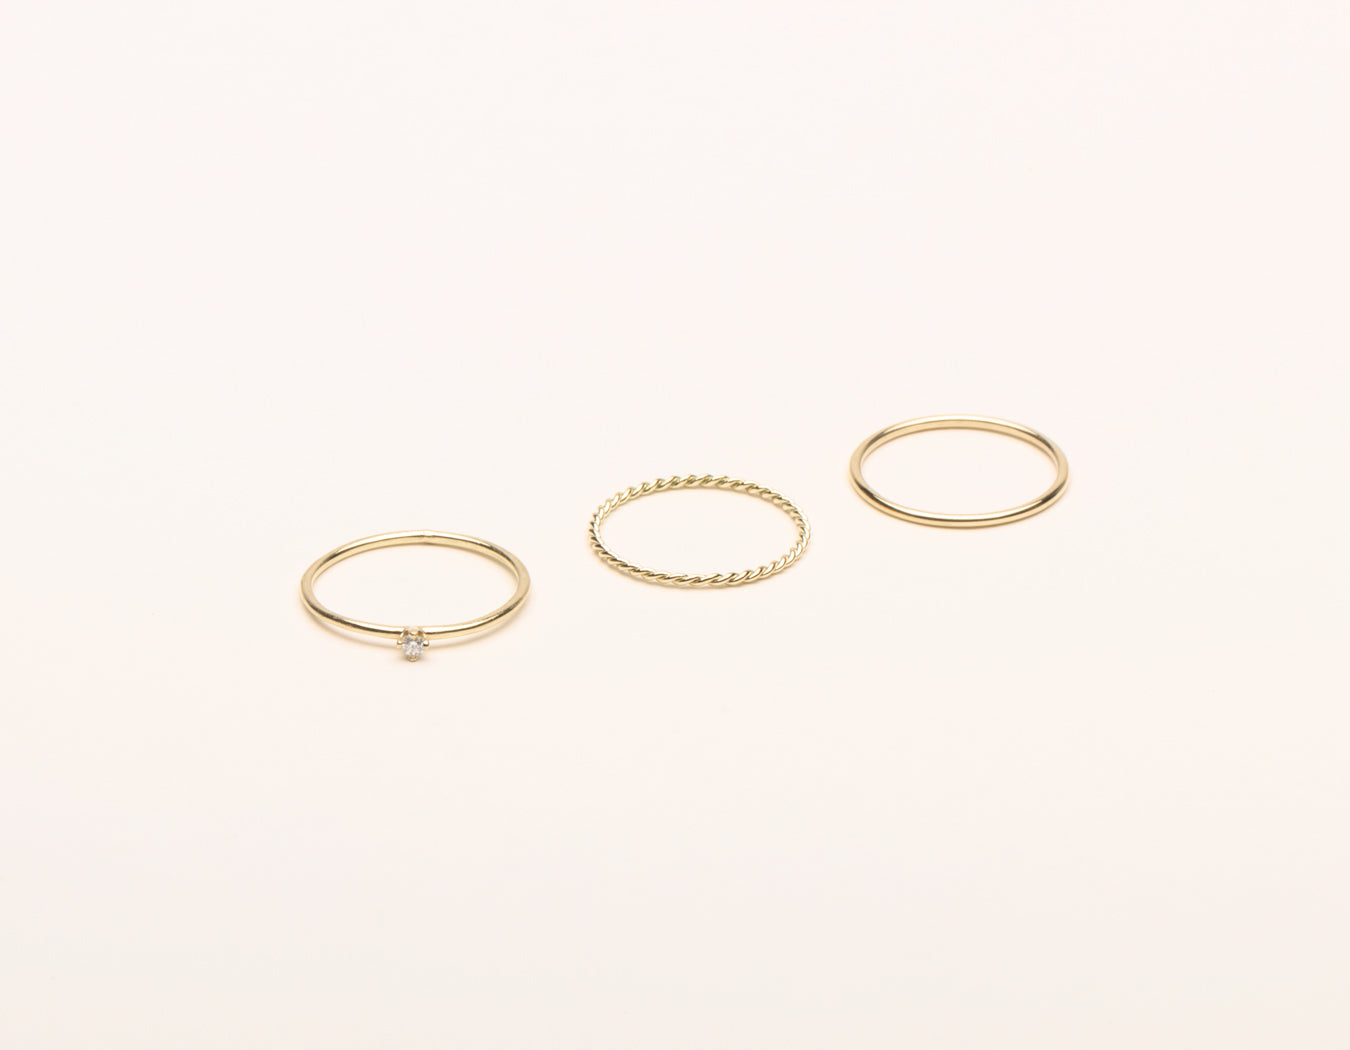 Vrai & Oro 14k solid gold Trio Bundle Rings modern Minimalist twist skinny stacker round diamond stacker, 14K Yellow Gold